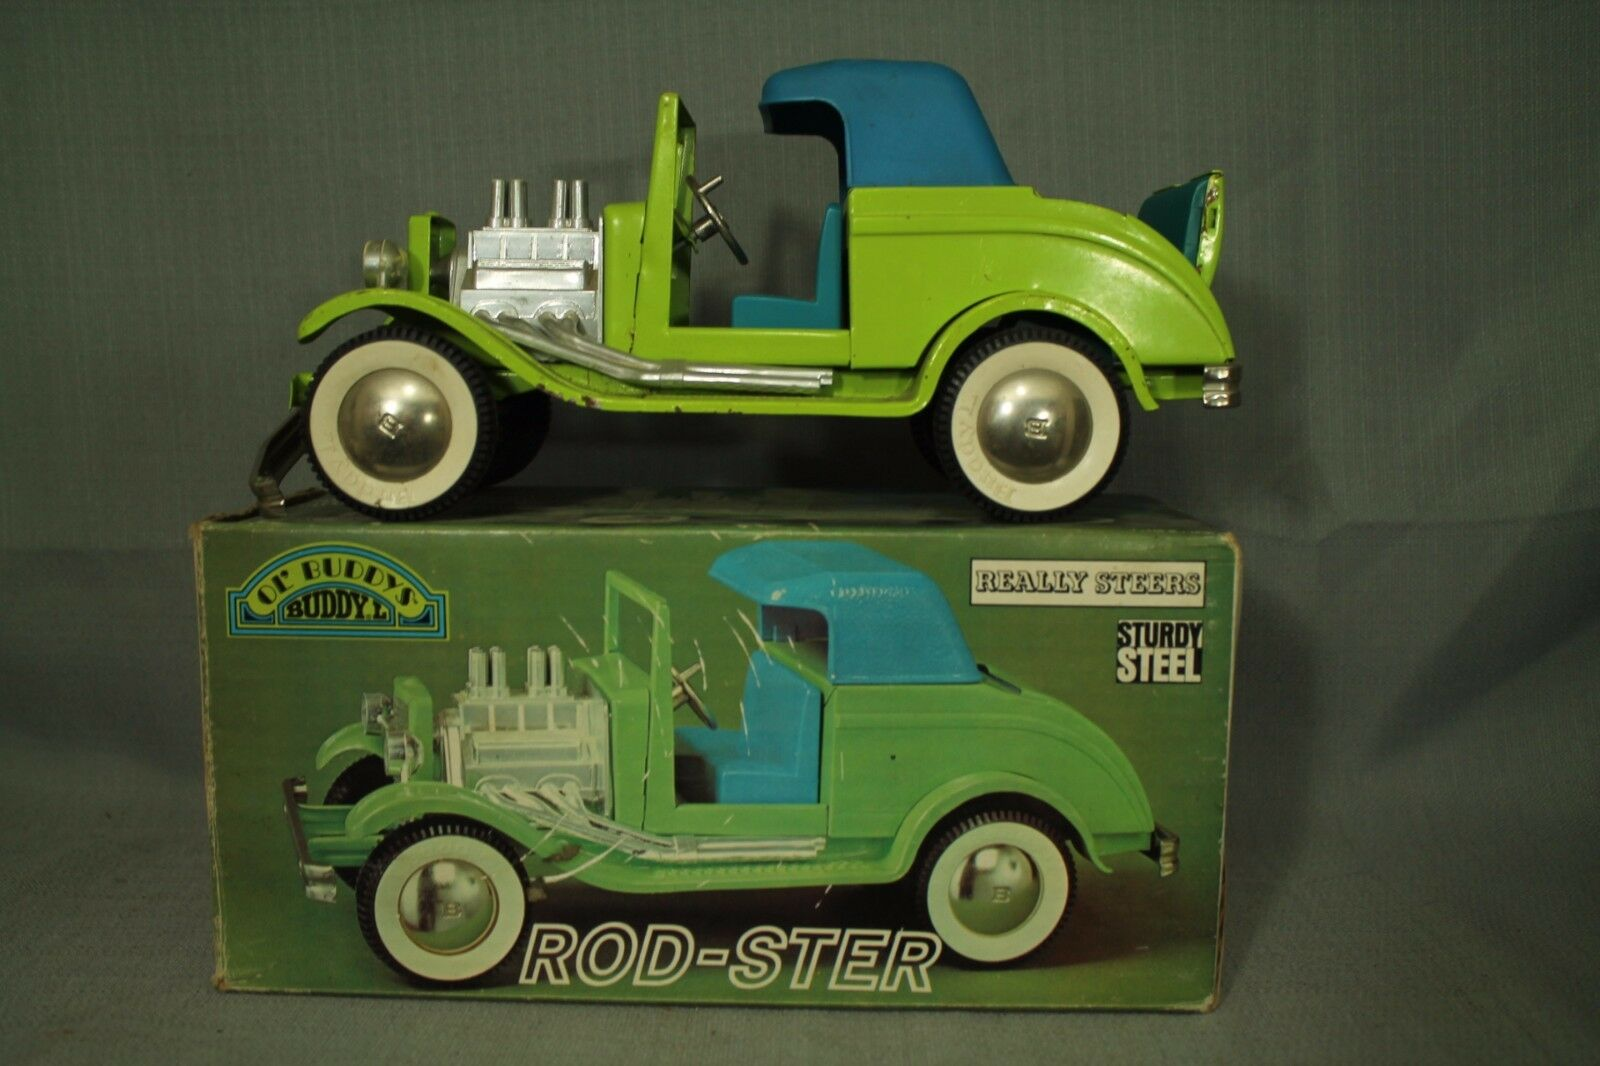 Vintage BUDDY L Ol' Rod-Ster 1930 Ford Rat Hot Rod Roadster Boîte D'Origine